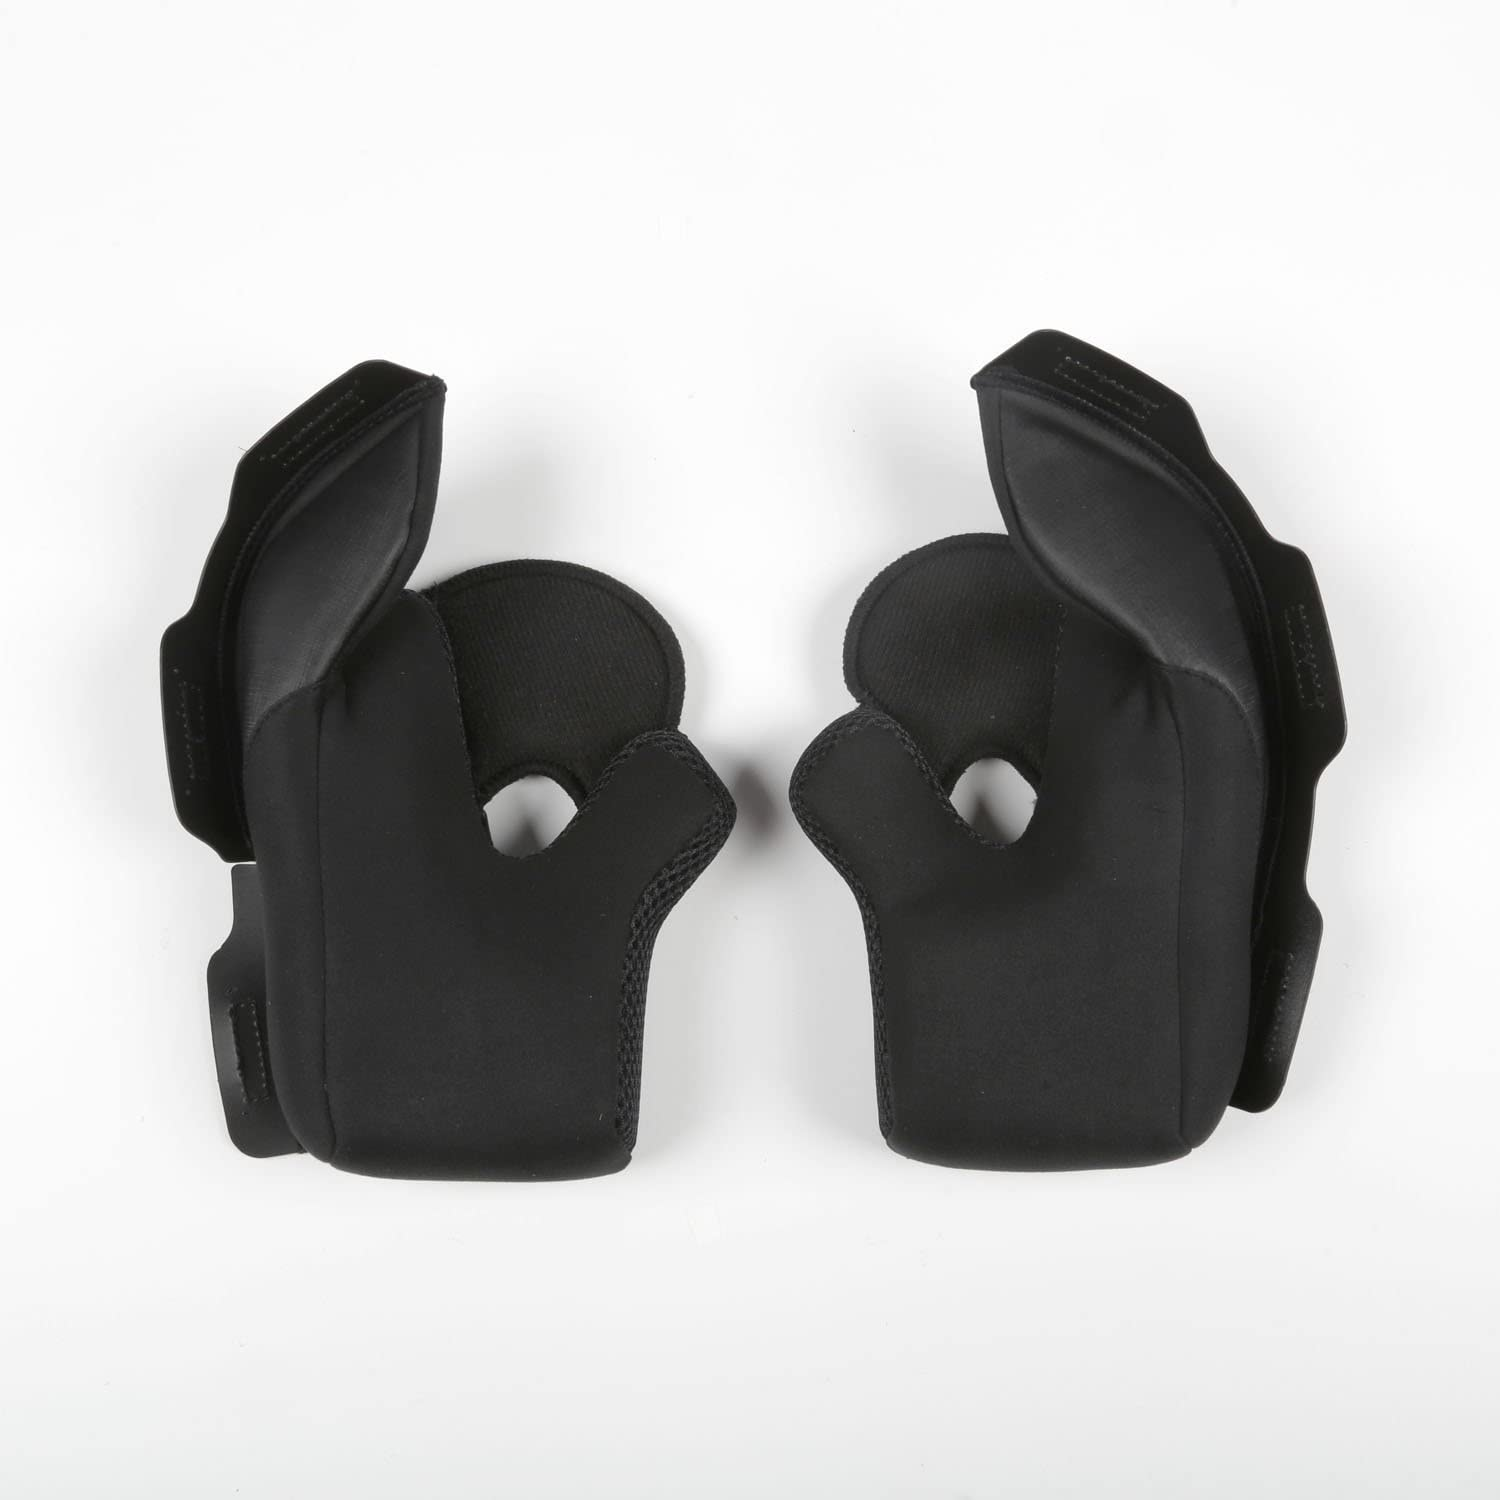 KLIM Krios Cheek Pads LG-3X 20 MM Black